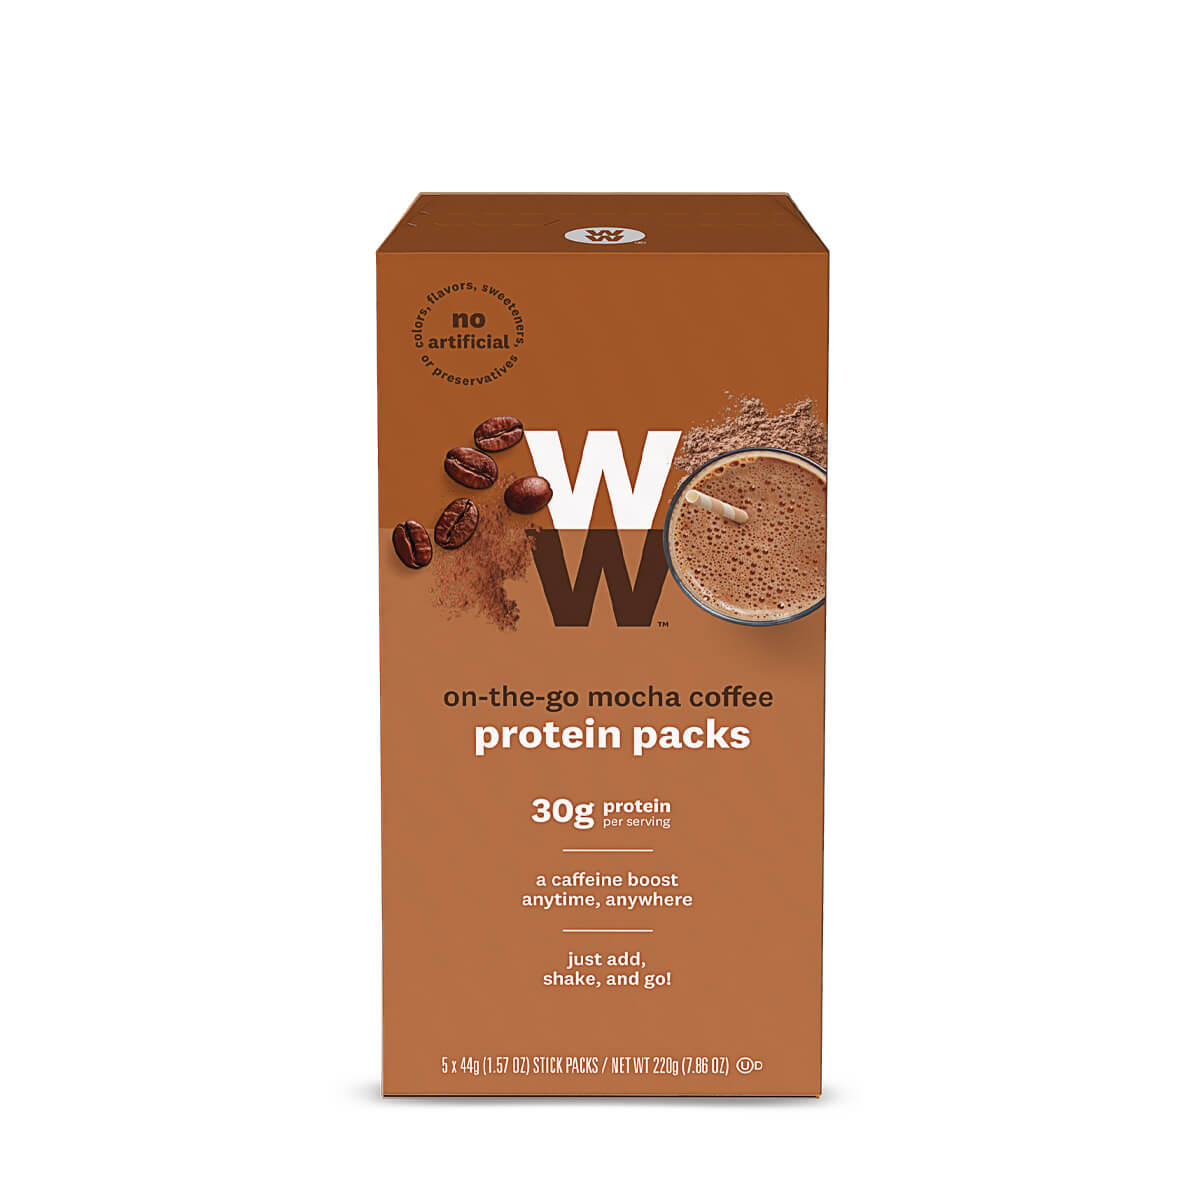 On the Go Mocha Coffee Protein Pack